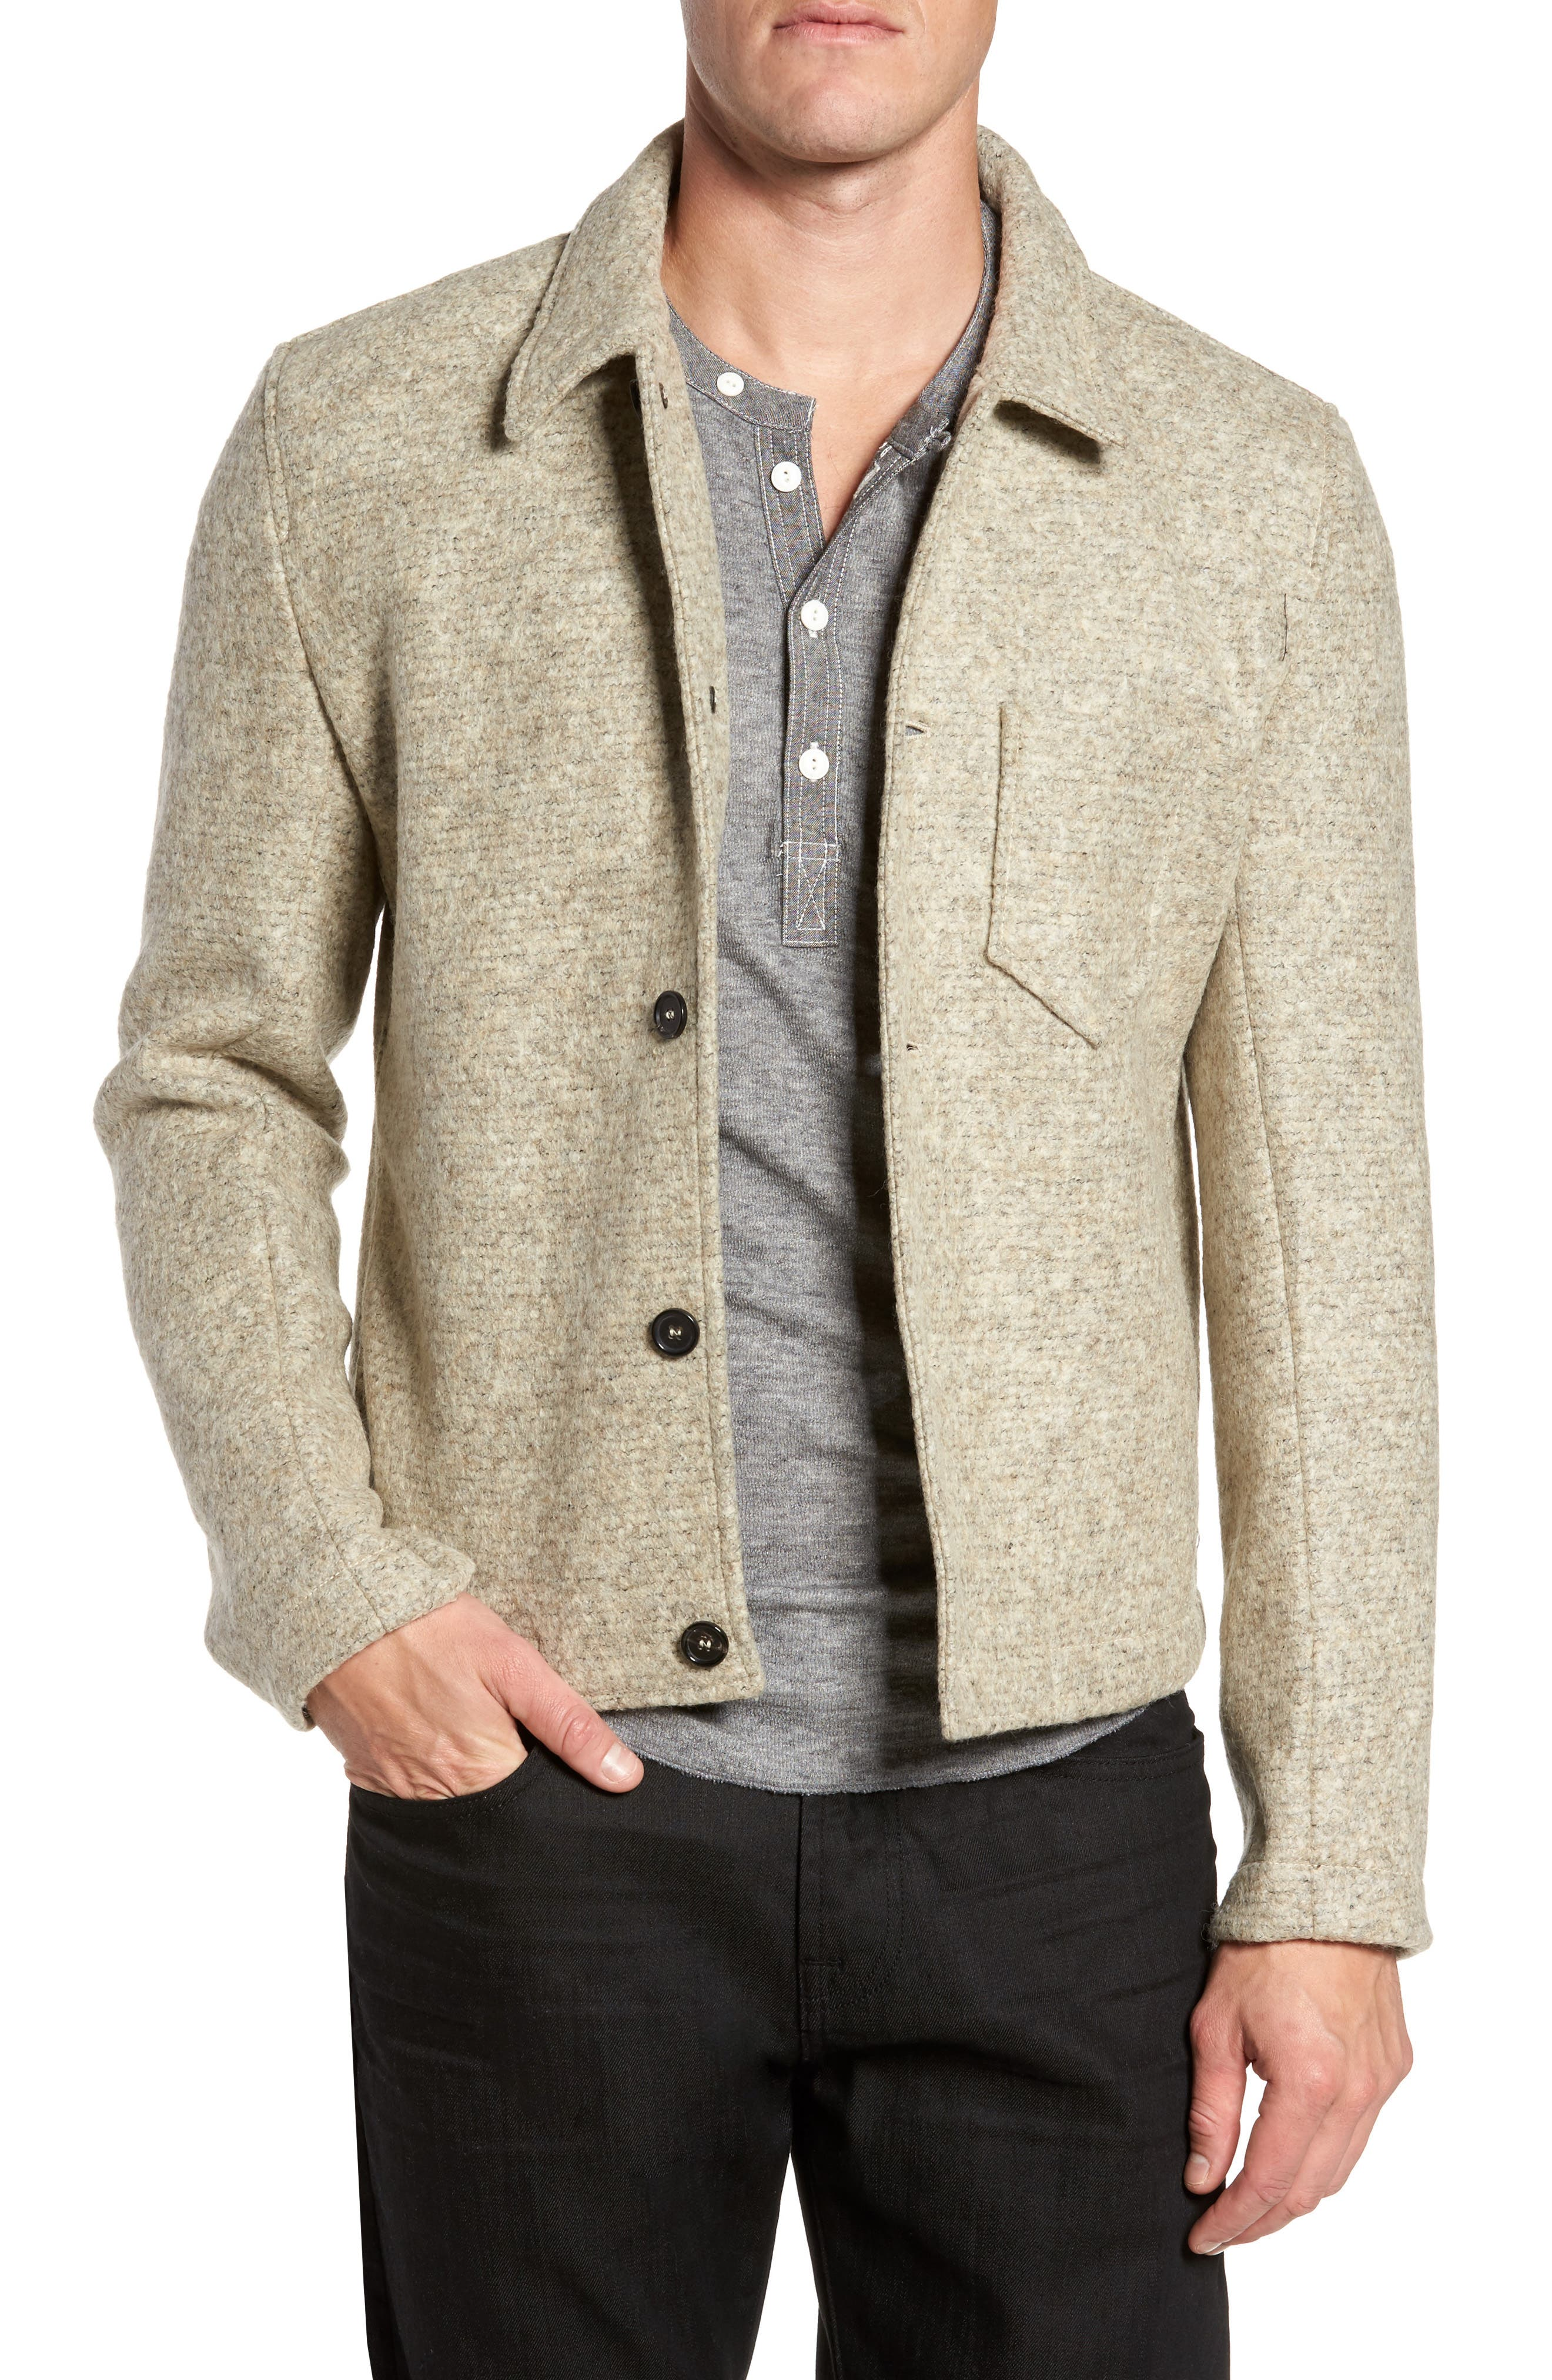 Gunner Wool Blend Jacket,                         Main,                         color, Beige